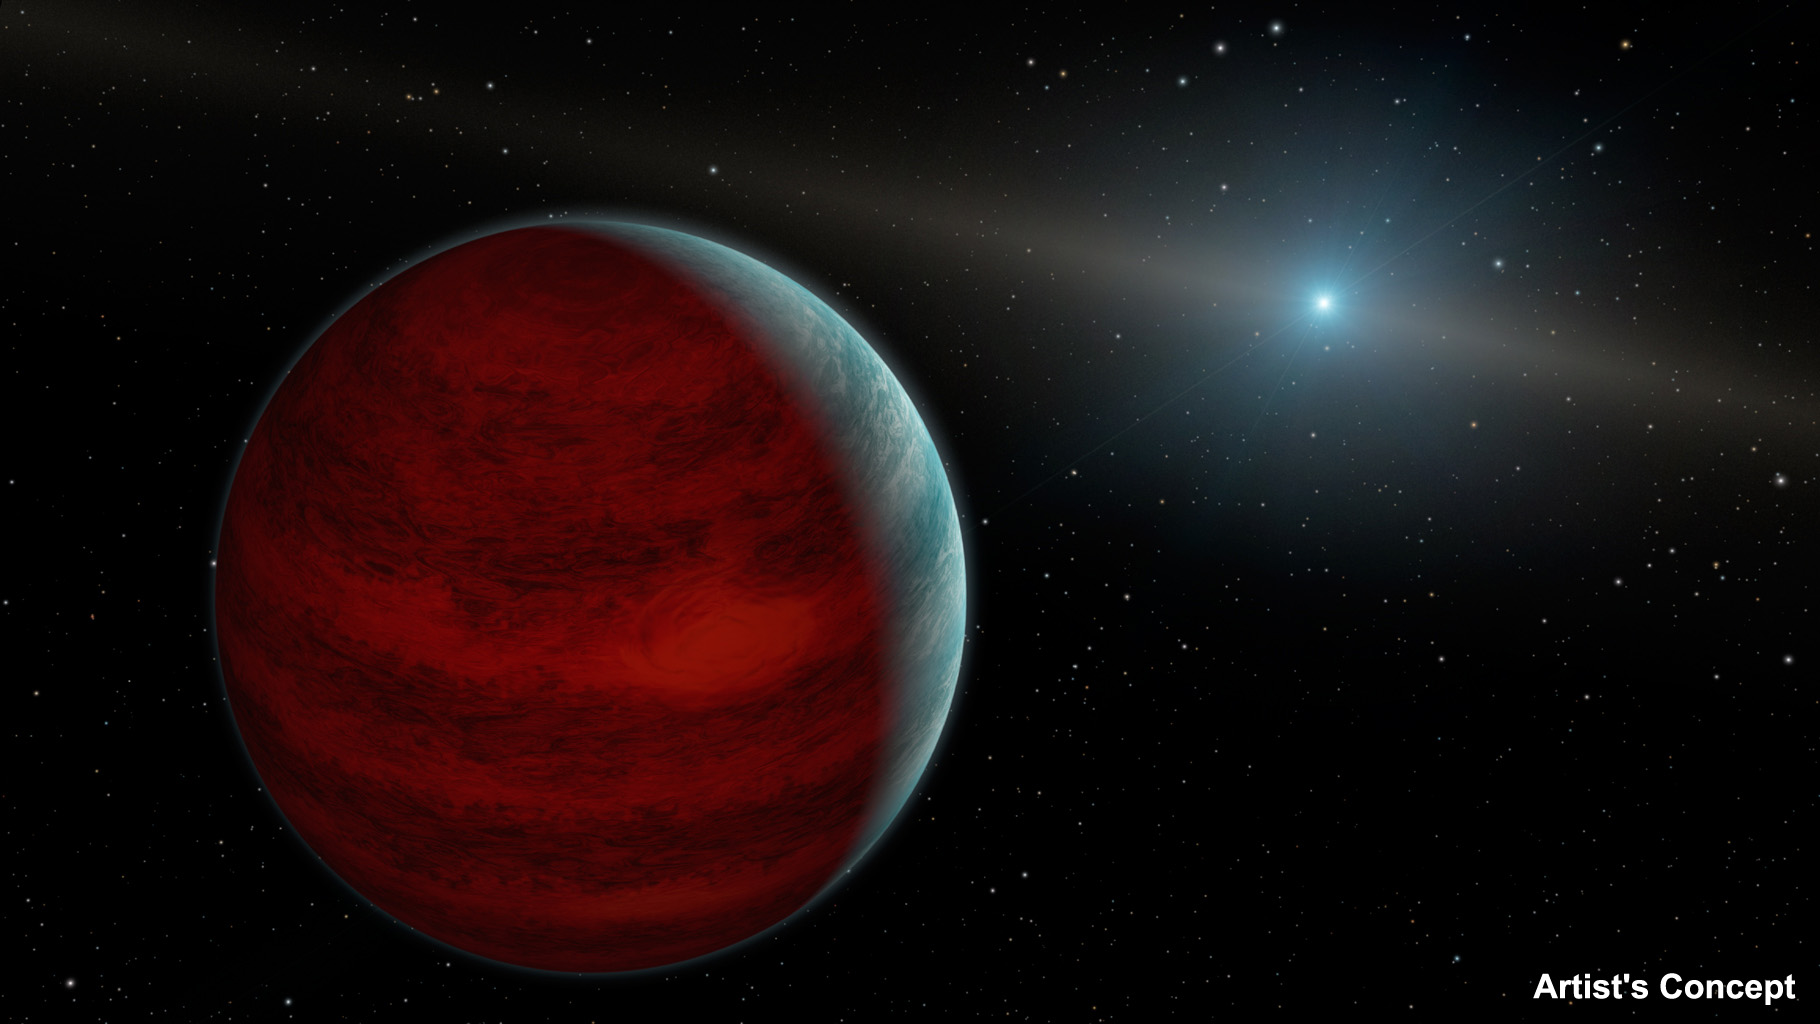 This artist's concept shows a hypothetical 'rejuvenated' planet,a gas giant that has reclaimed its youthful infrared glow. NASA's Spitzer Space Telescope found tentative evidence for one such planet around a dead star, or white dwarf, called PG 0010+280.